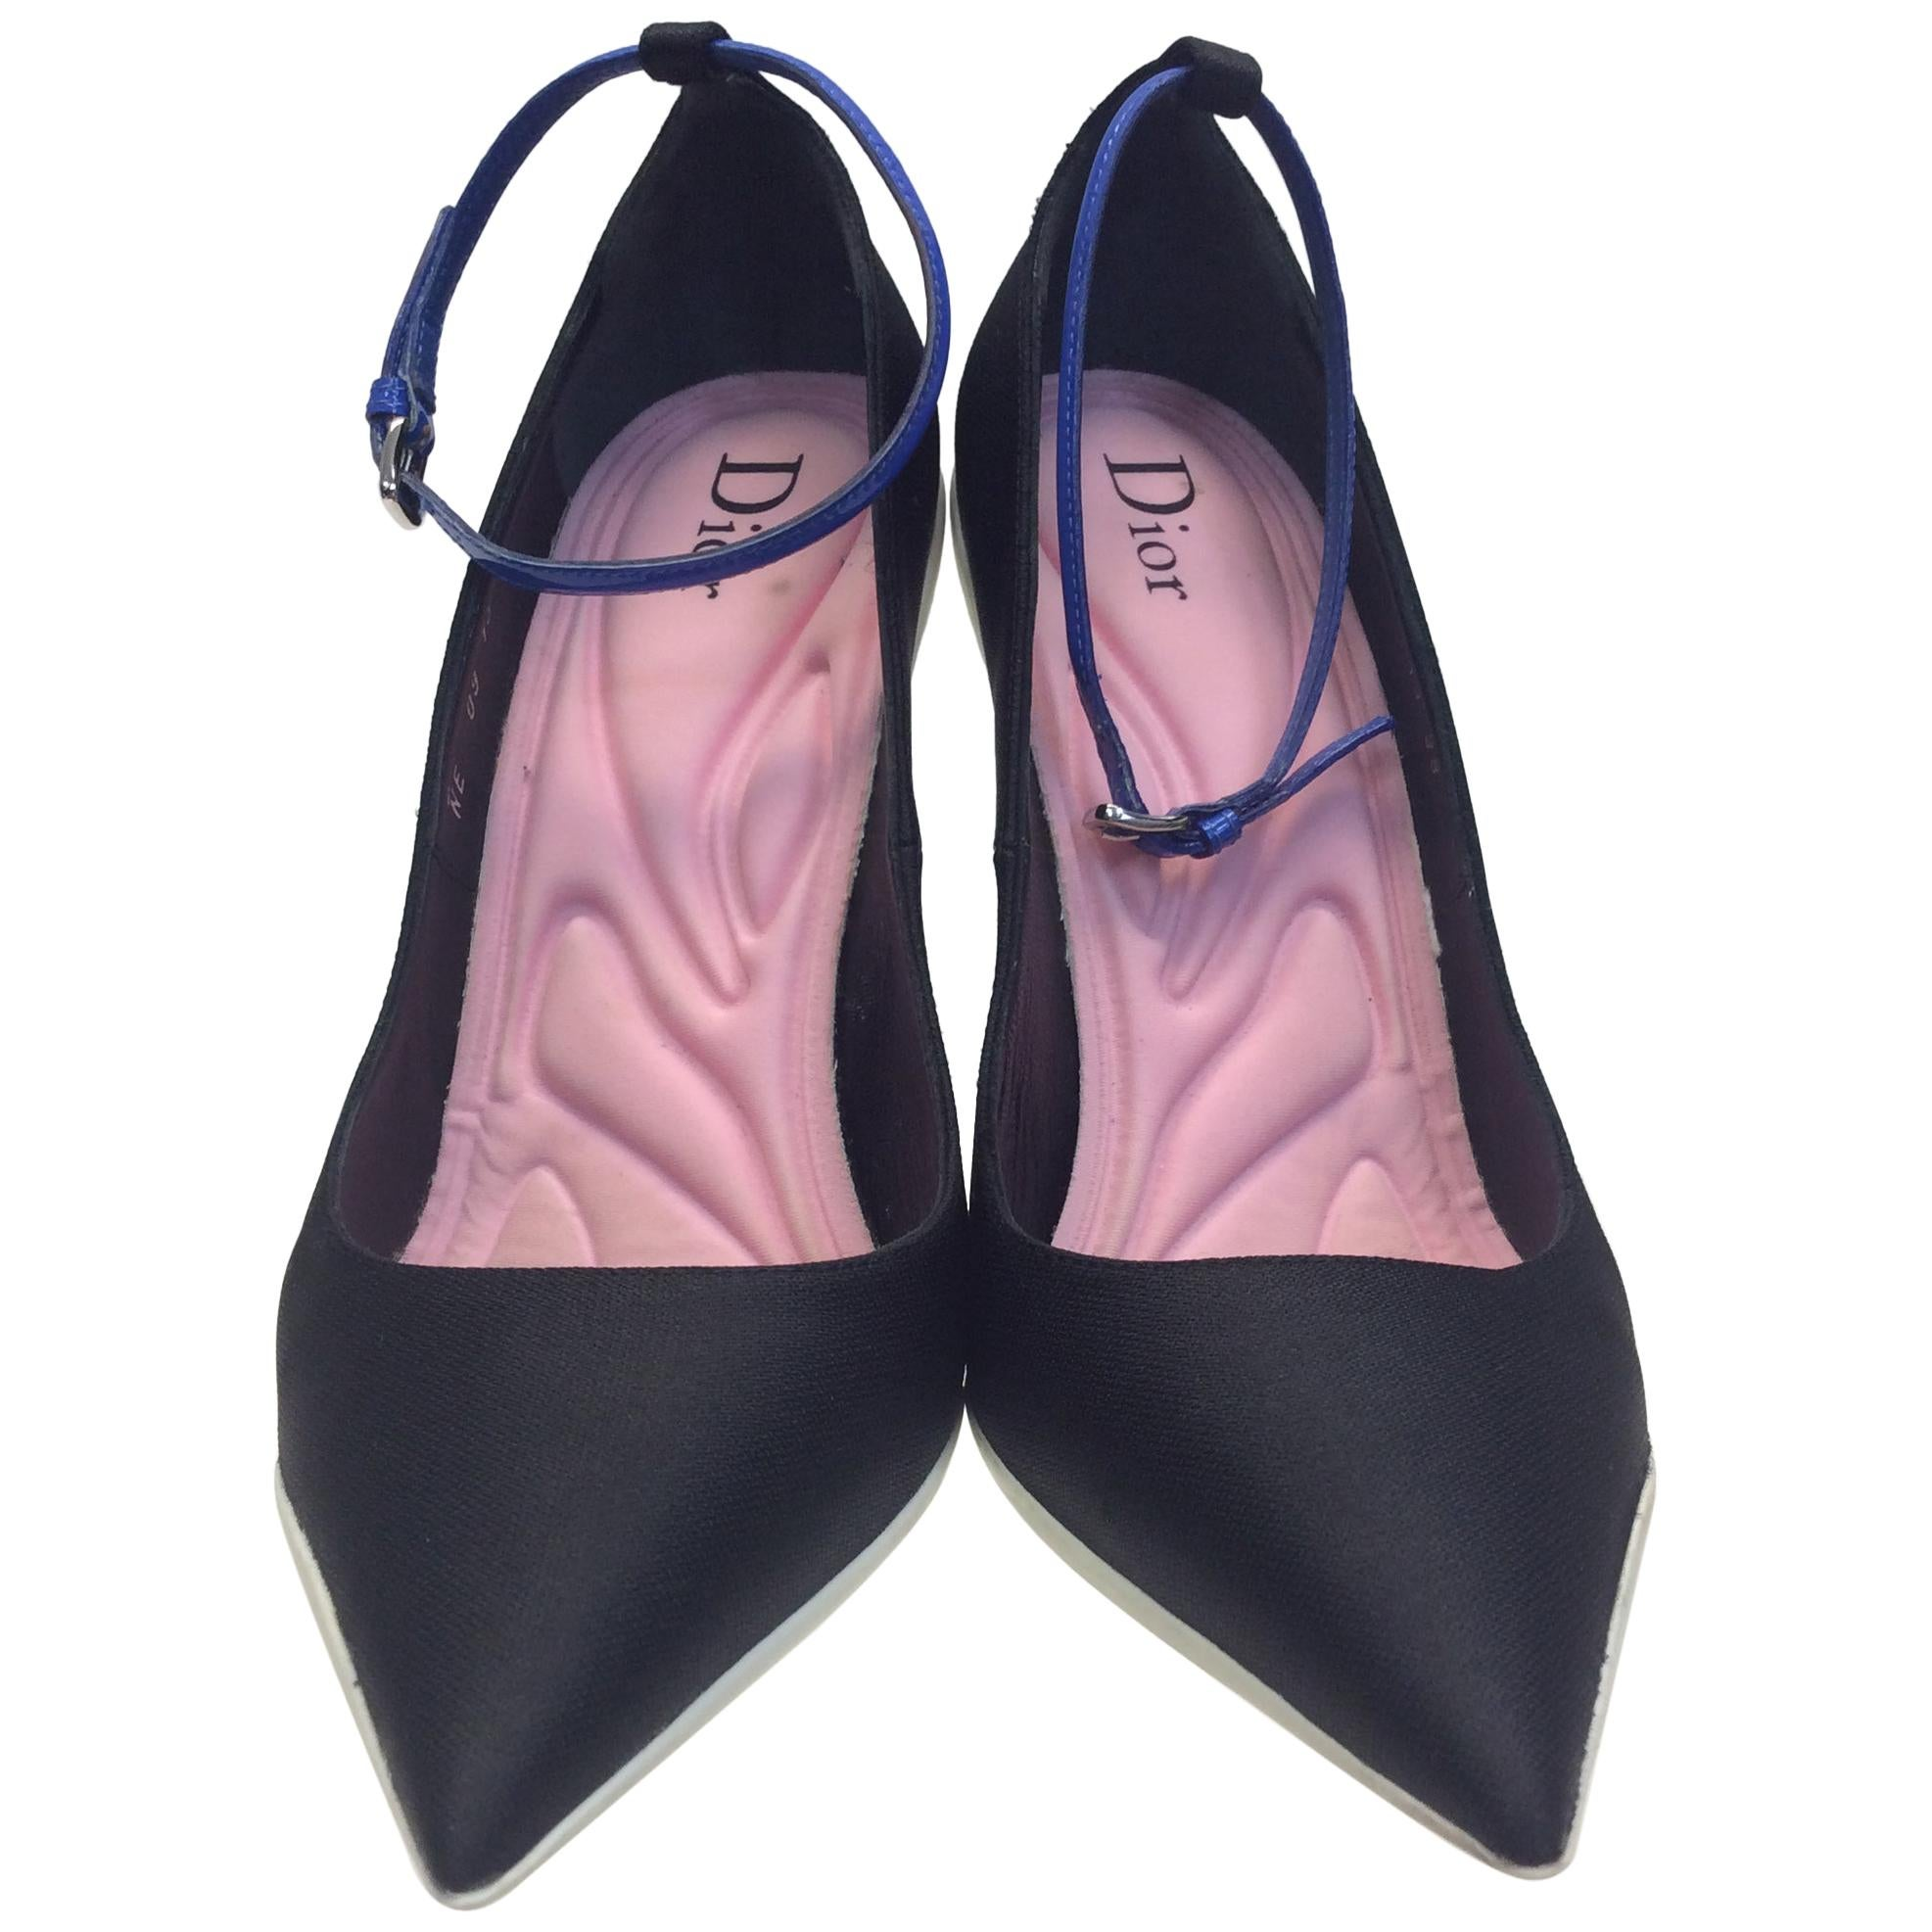 aa1092aa716a2 Vintage Christian Dior Shoes - 86 For Sale at 1stdibs